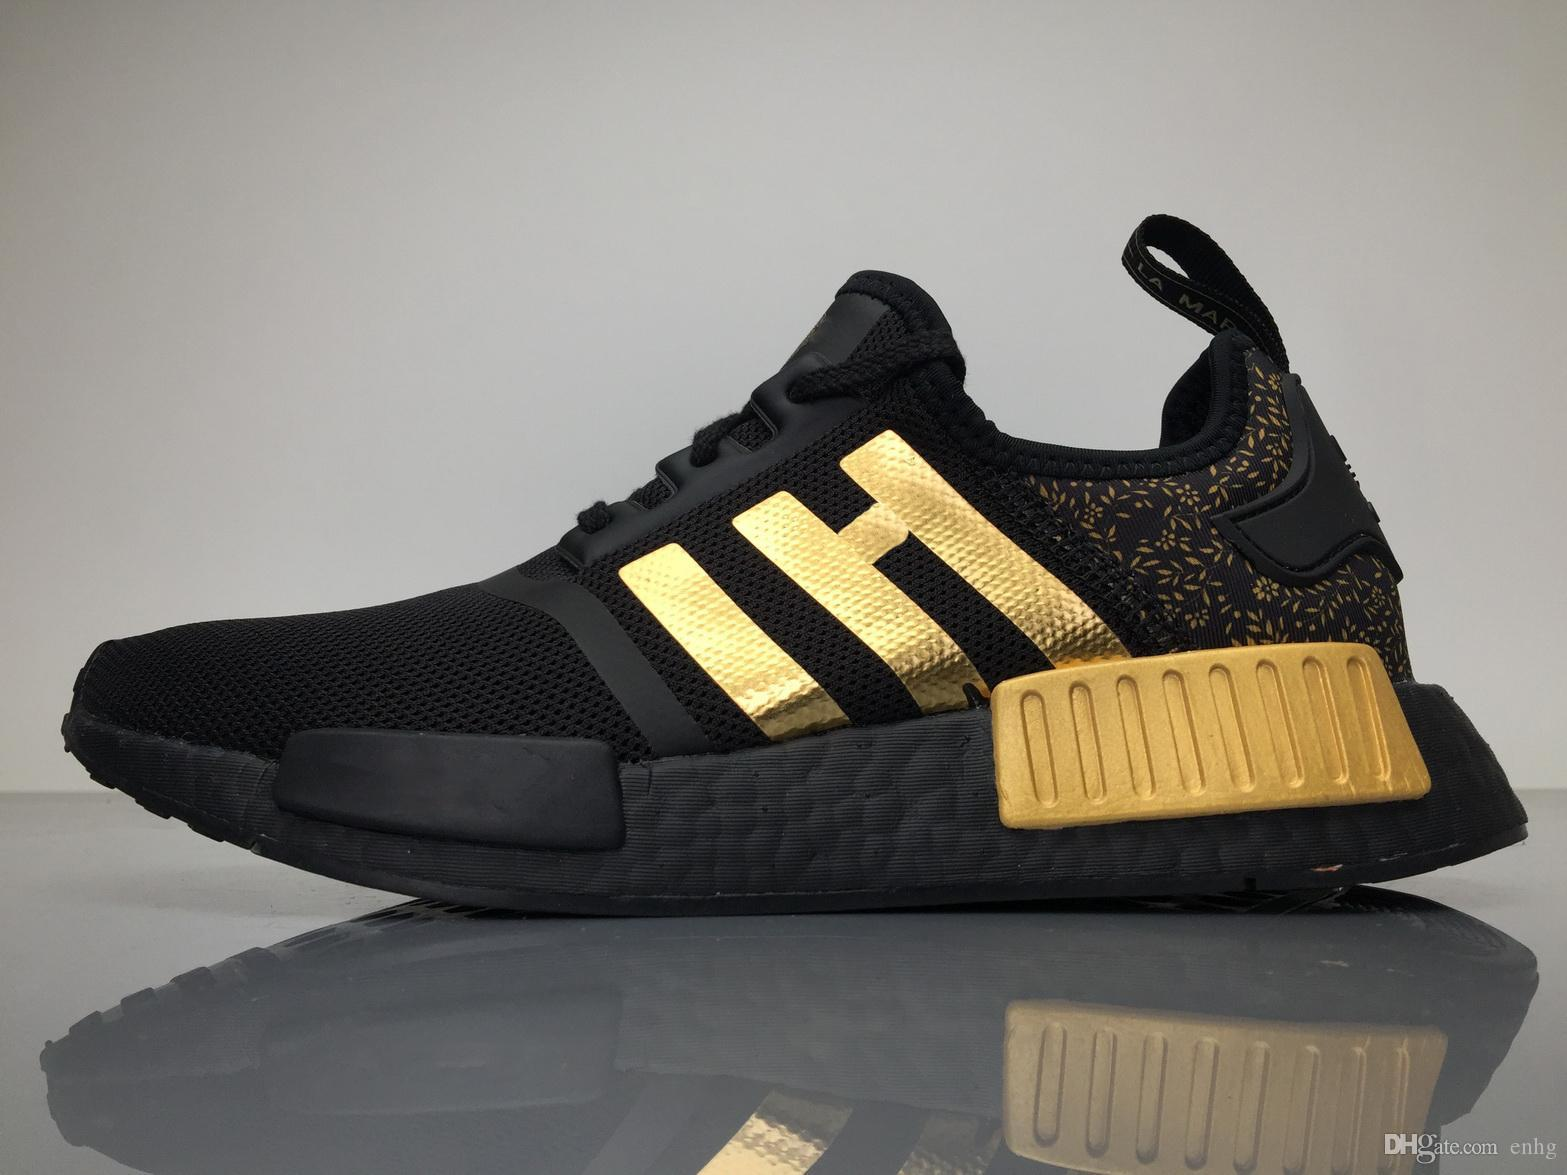 detailed look 930fe 93790 2017Versace X NMD Running Shoes Originals NMDs BA7250 Outdoor Sneakers  Black Gold Top Real Boost Sneakers Womens Boosts